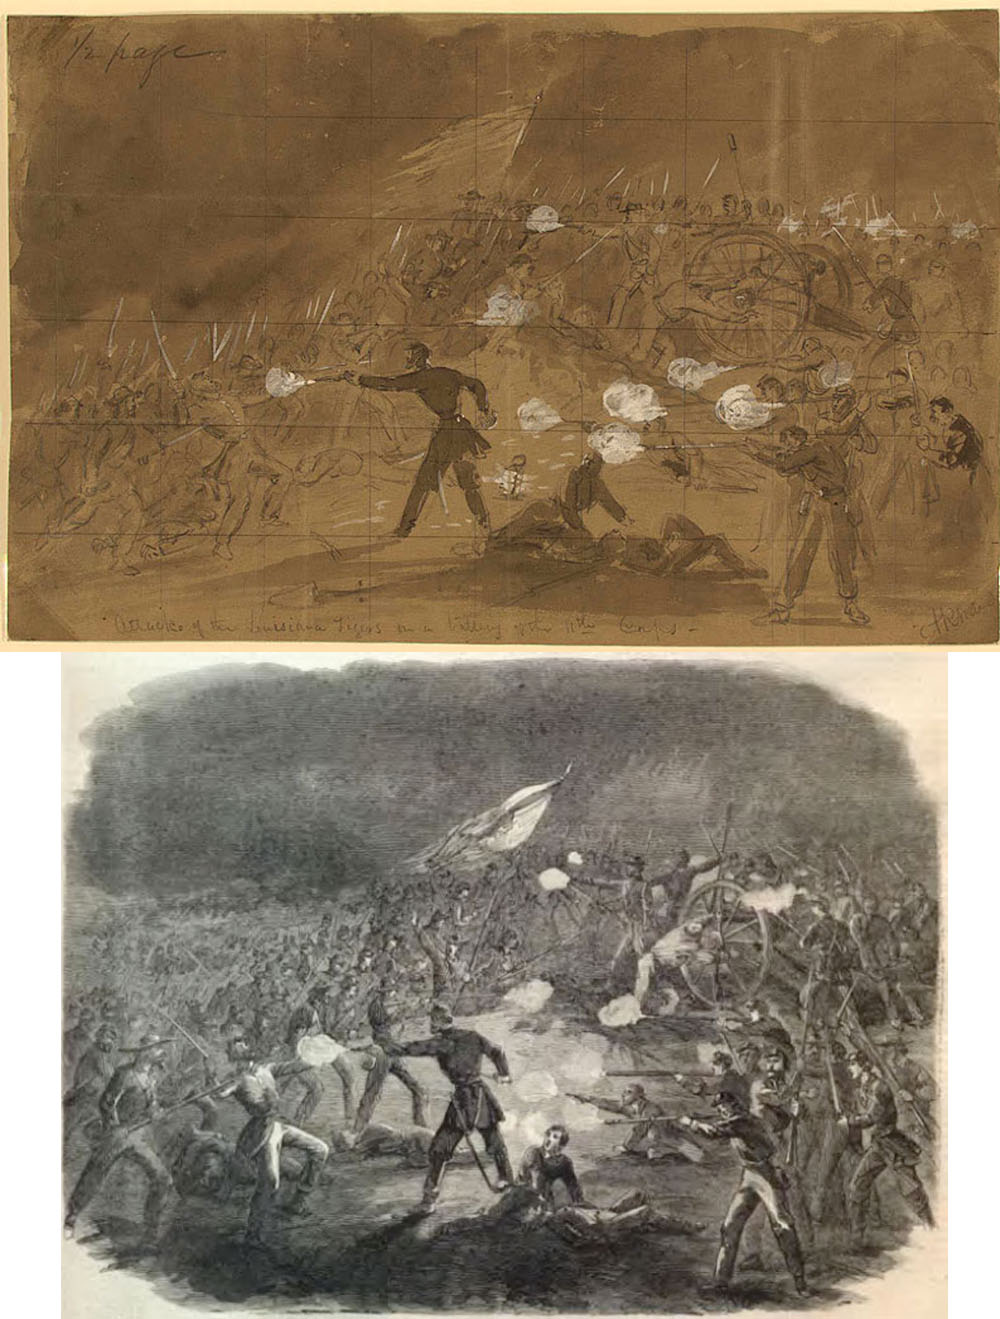 Alfred Waud,Attack of the Louisiana Tigers on a Battery of the 11th Corps at Gettysburg, (July 1, 1863) ink and Chinese white on brown paper; the wood engraving in Harpers of the same scene, published as a half-page illustration on August 8, 1863, the third consecutive issue to provide extensive coverage of the battle